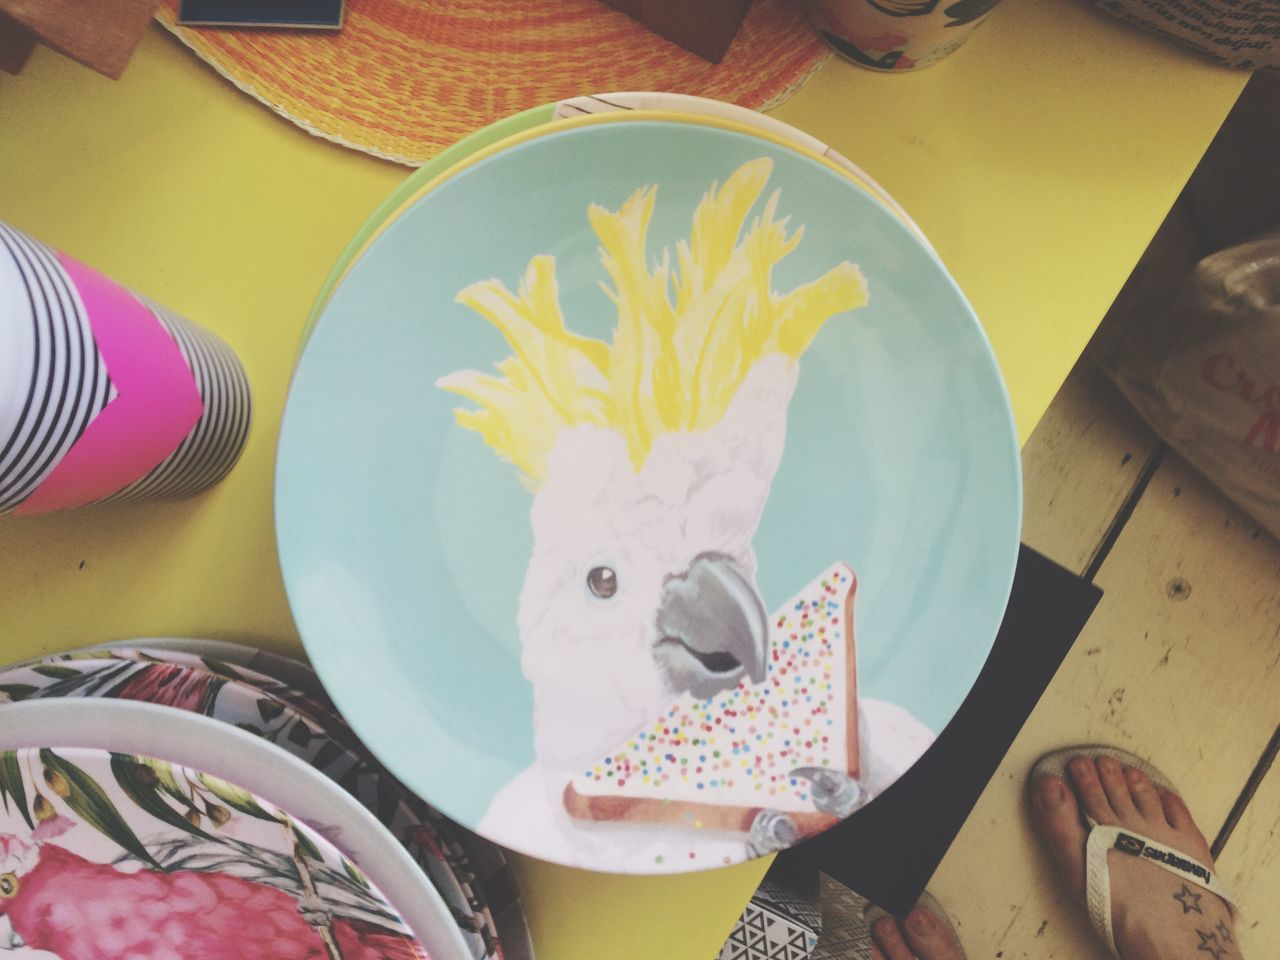 Dude Bird On A Plate